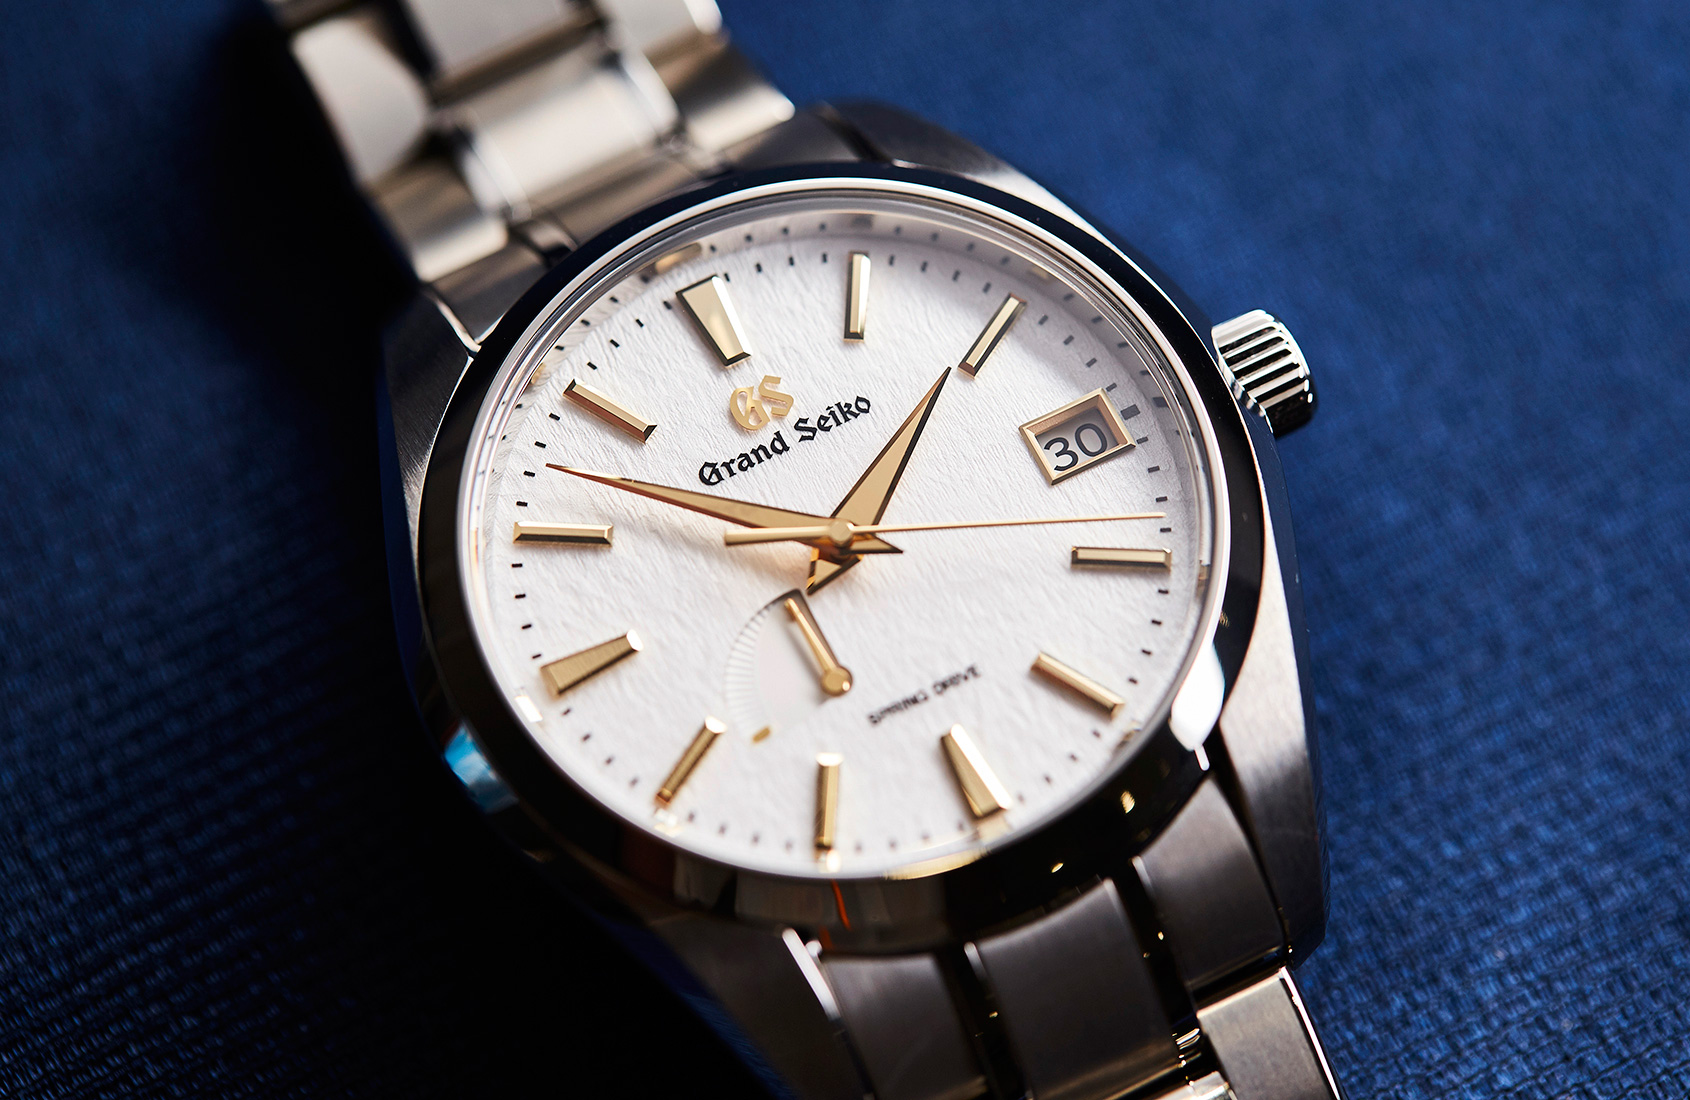 HANDS-ON: The Golden Snowflake – Grand Seiko's Spring Drive